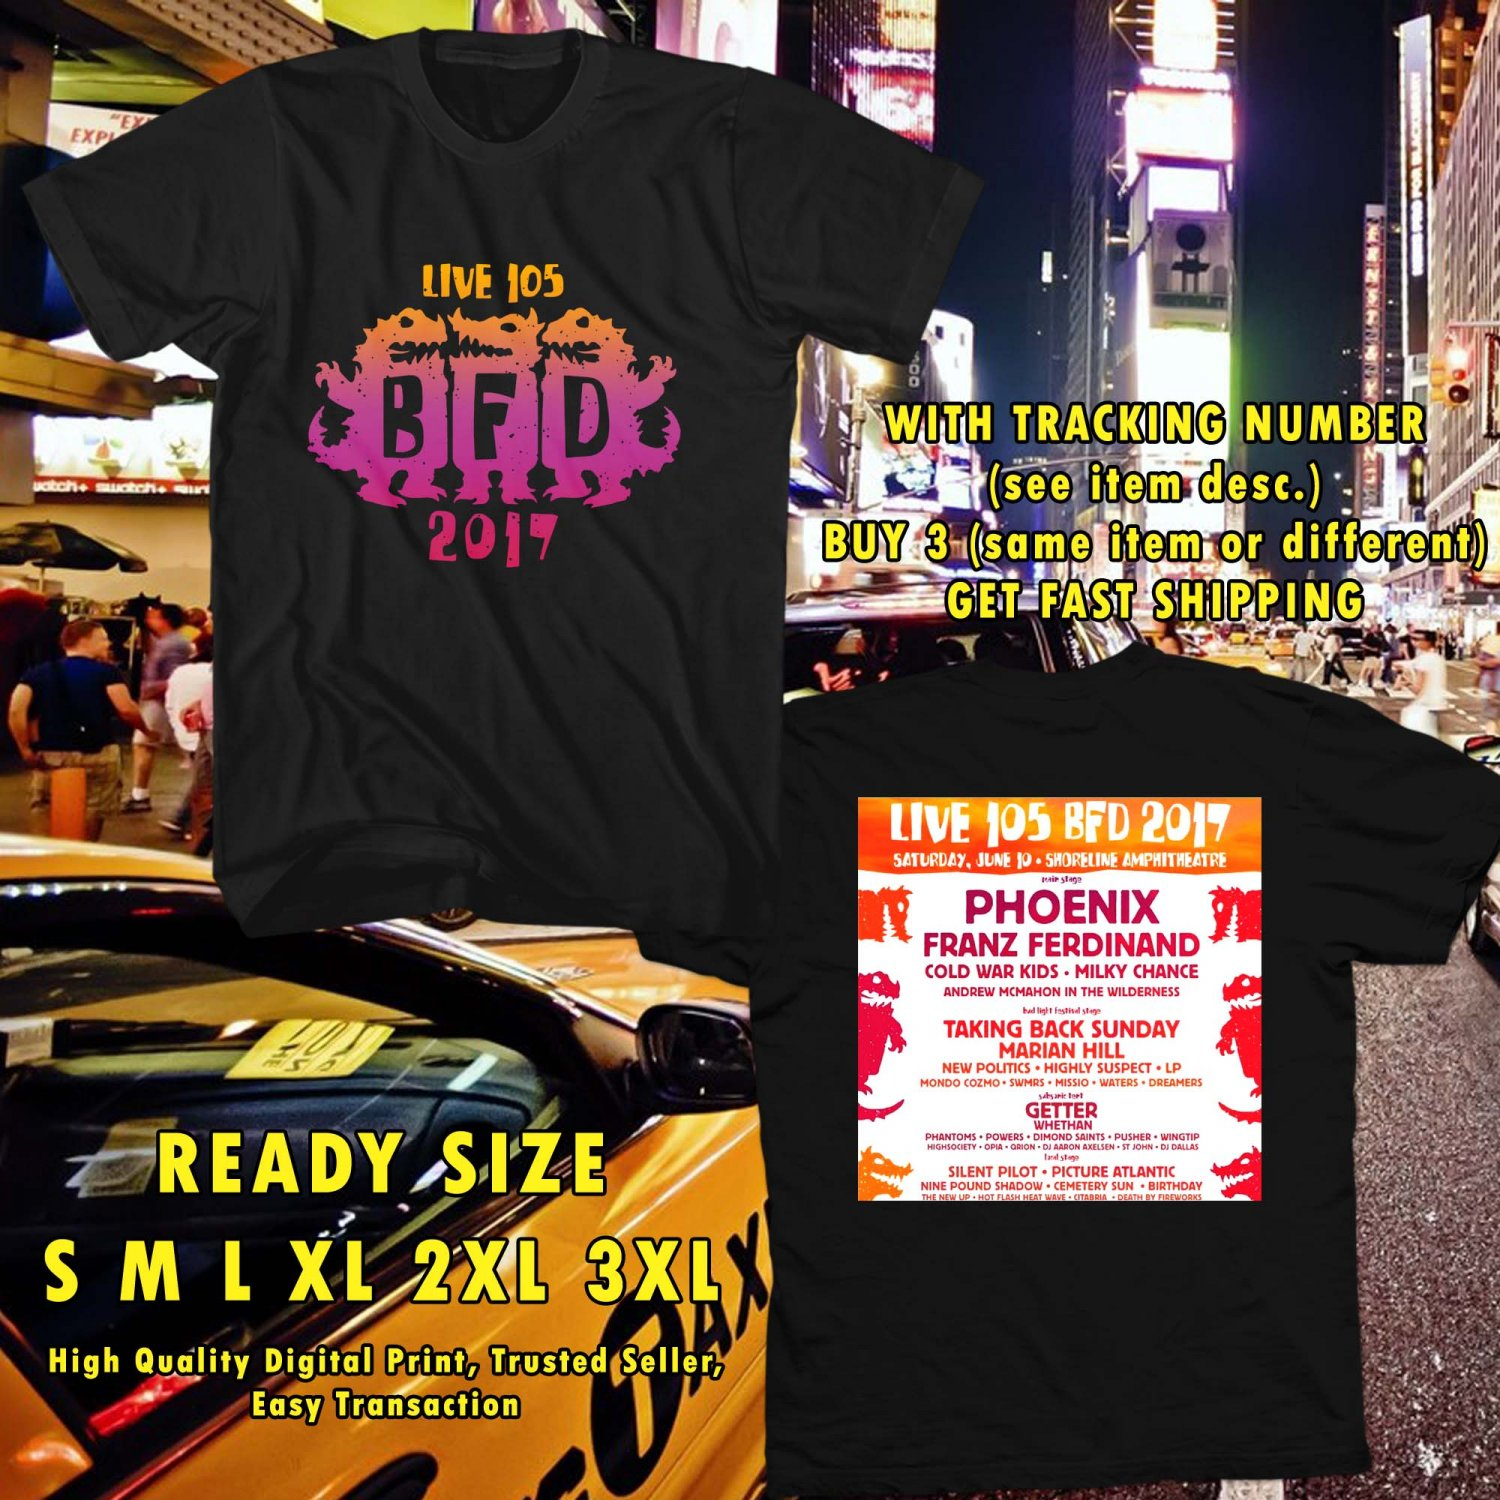 HITS LIVE 105'S BFD FESTIVAL JUN 2017 BLACK TEE'S 2SIDE MAN WOMEN ASTR